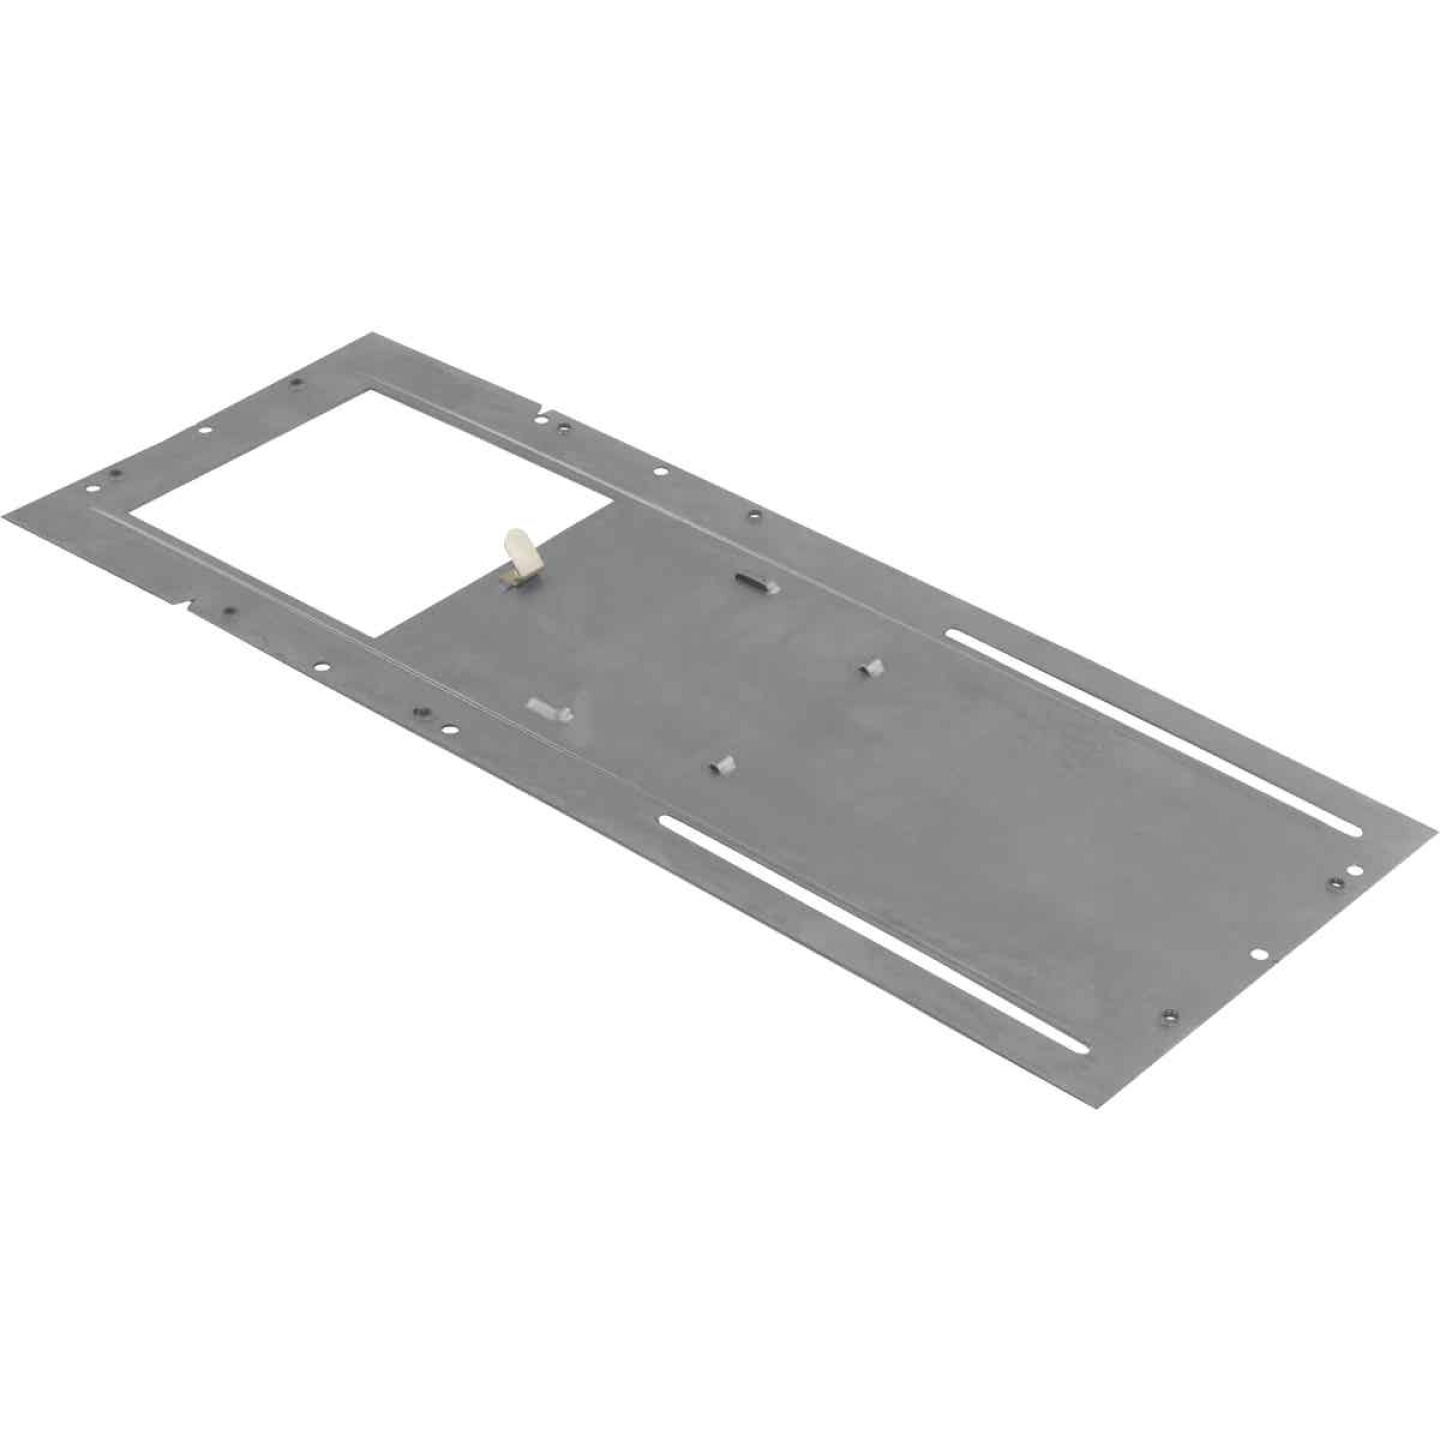 Liteline Trenz ThinLED 4 In. Square Recessed Fixture Mounting Plate Image 1